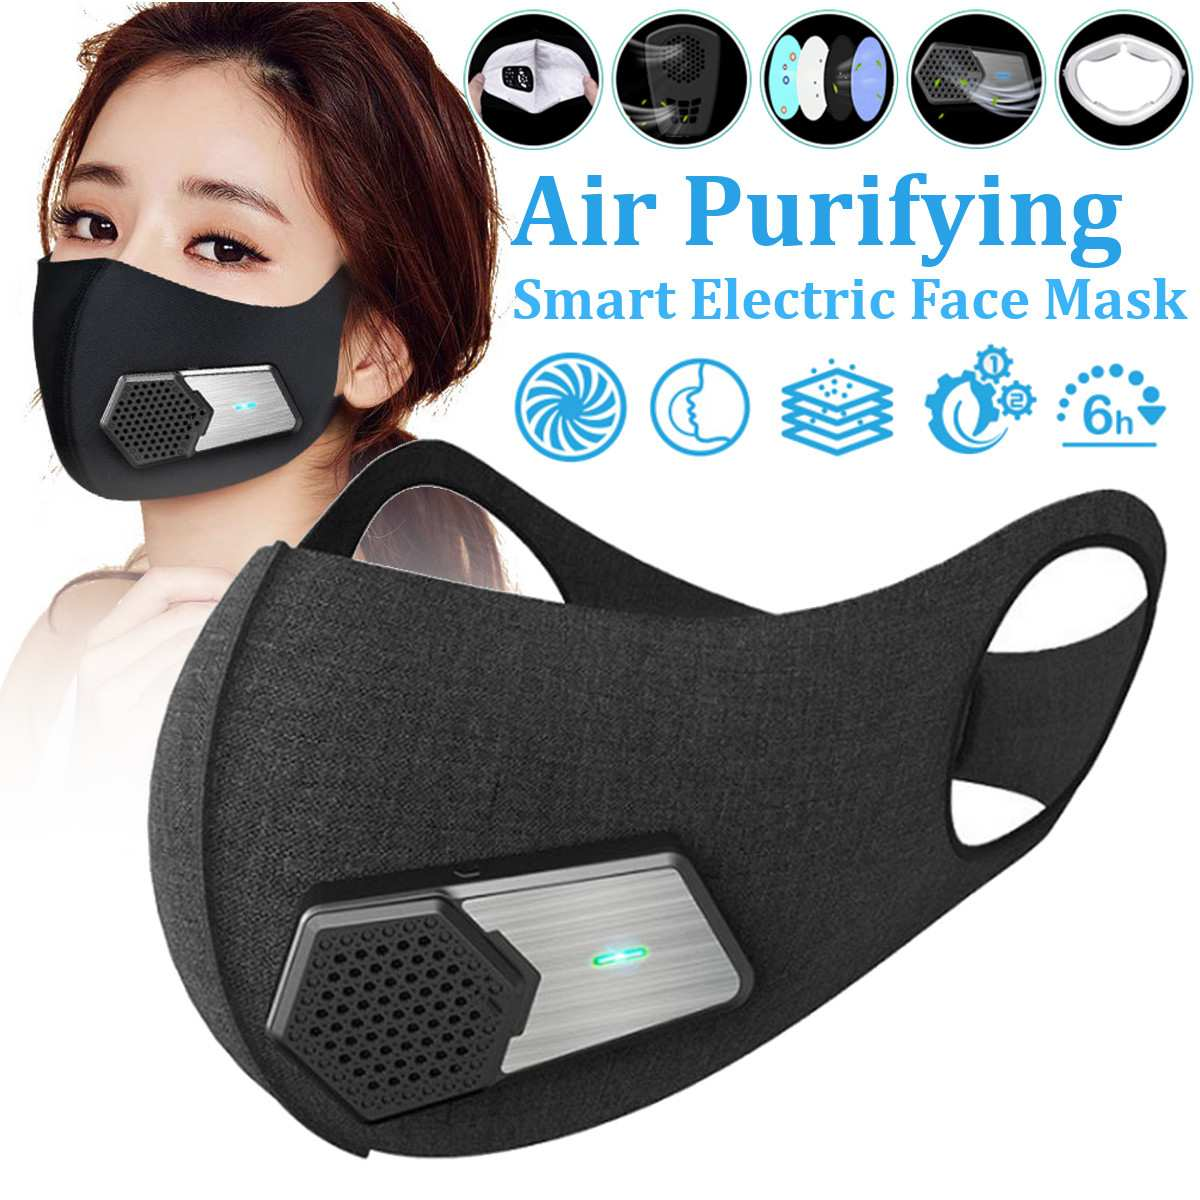 Smart Electric Face Dust Mask Air Purifying N95 Anti Dust Pollution PM2.5 With Breathable Valve Personal Health Fresh Air SupplySmart Electric Face Dust Mask Air Purifying N95 Anti Dust Pollution PM2.5 With Breathable Valve Personal Health Fresh Air Supply